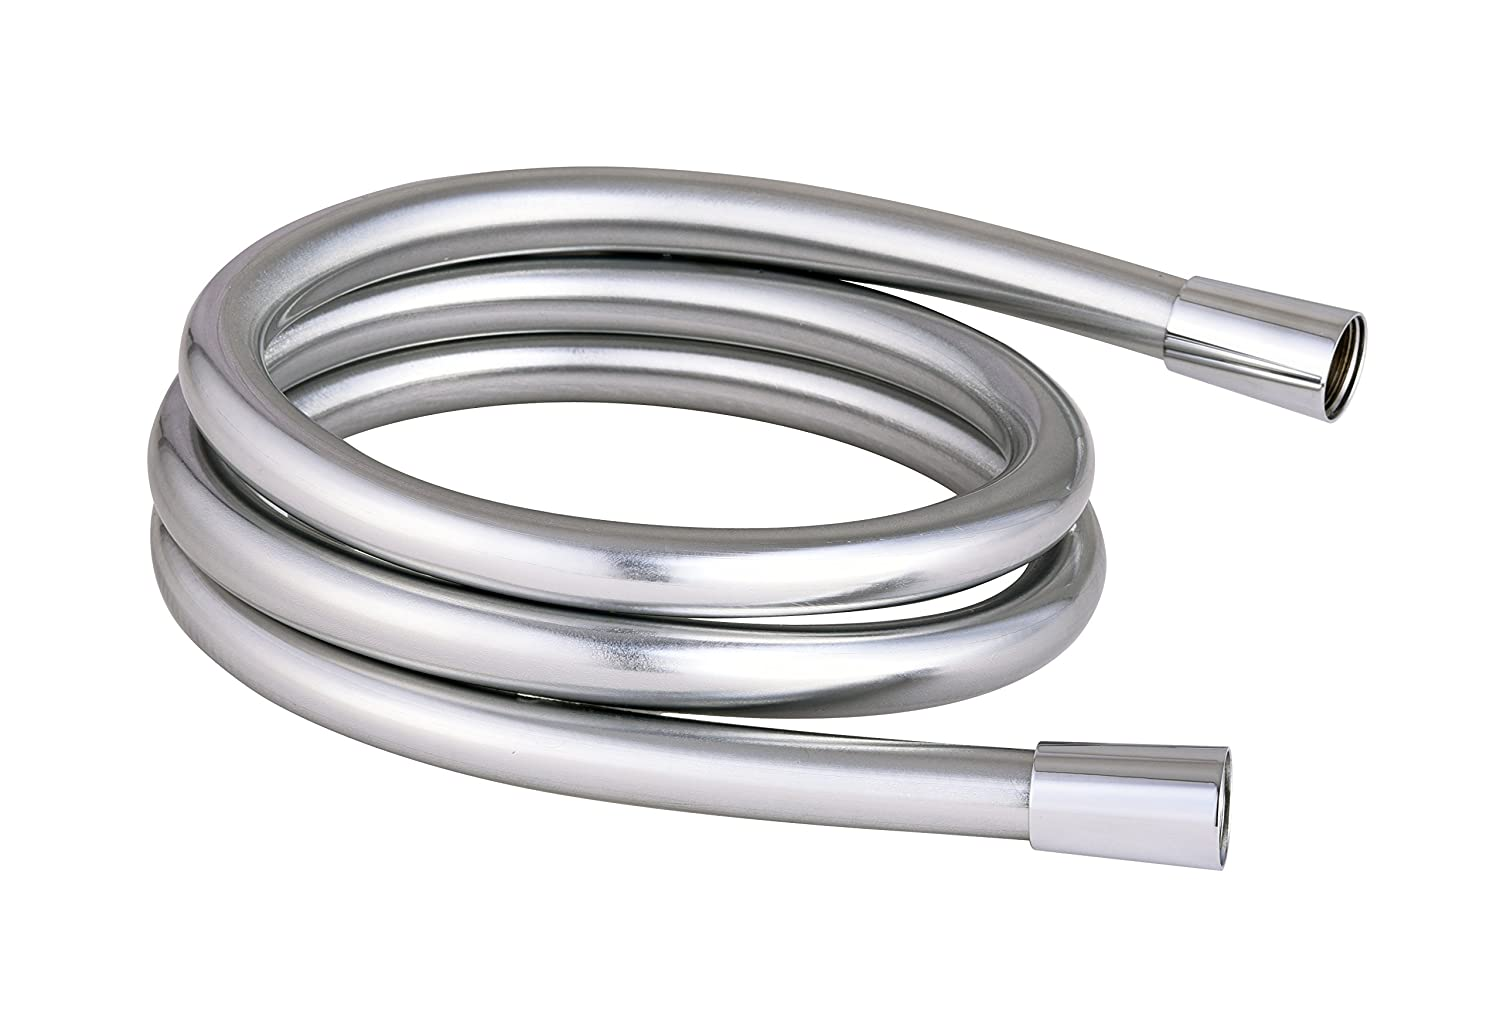 1.5m Universal PVC Smooth Chrome Flexi Shower Hose Universal Replacement Mira Triton Grohe Tailored Plumb